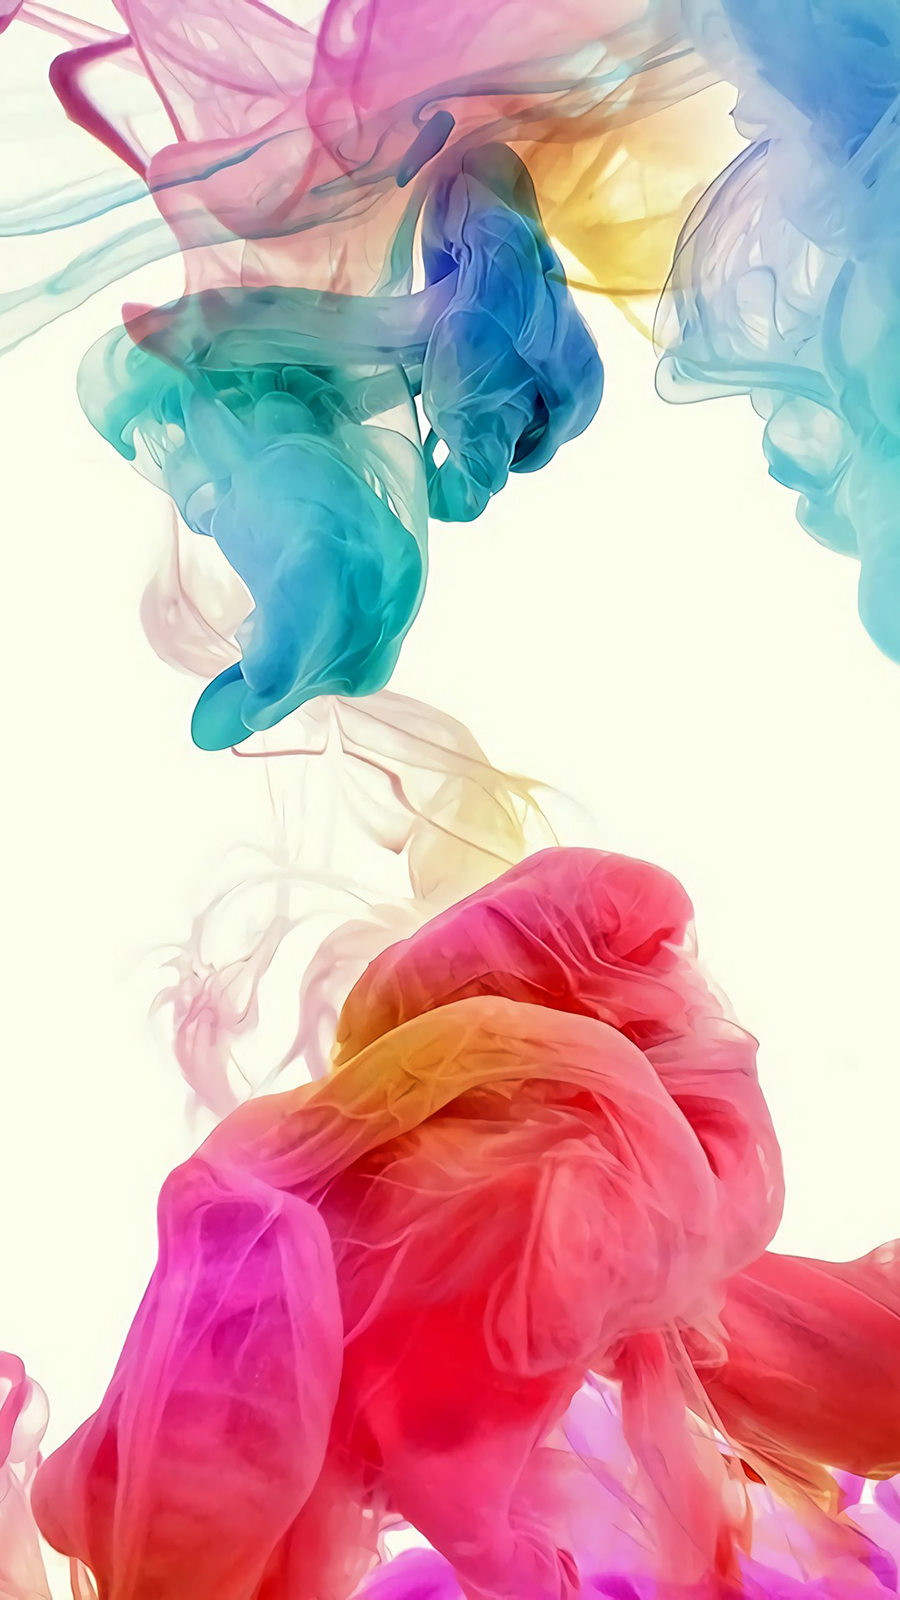 Wallpapers of Mixed Colors